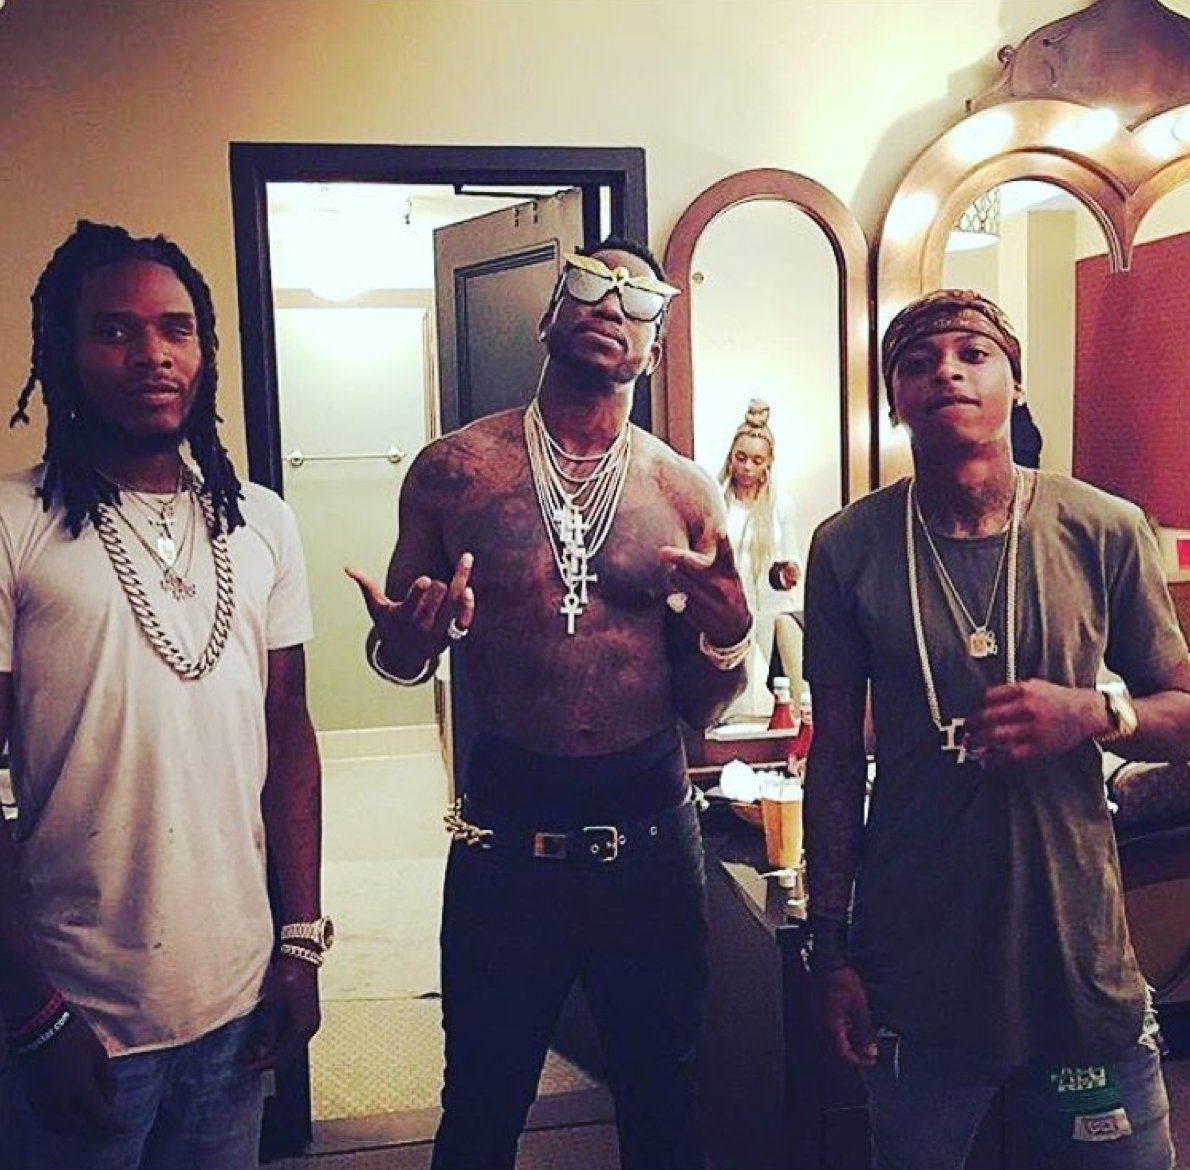 83ef0a42452a6e Fetty Wap was very excited to meet Gucci Mane last night (and they  performed together